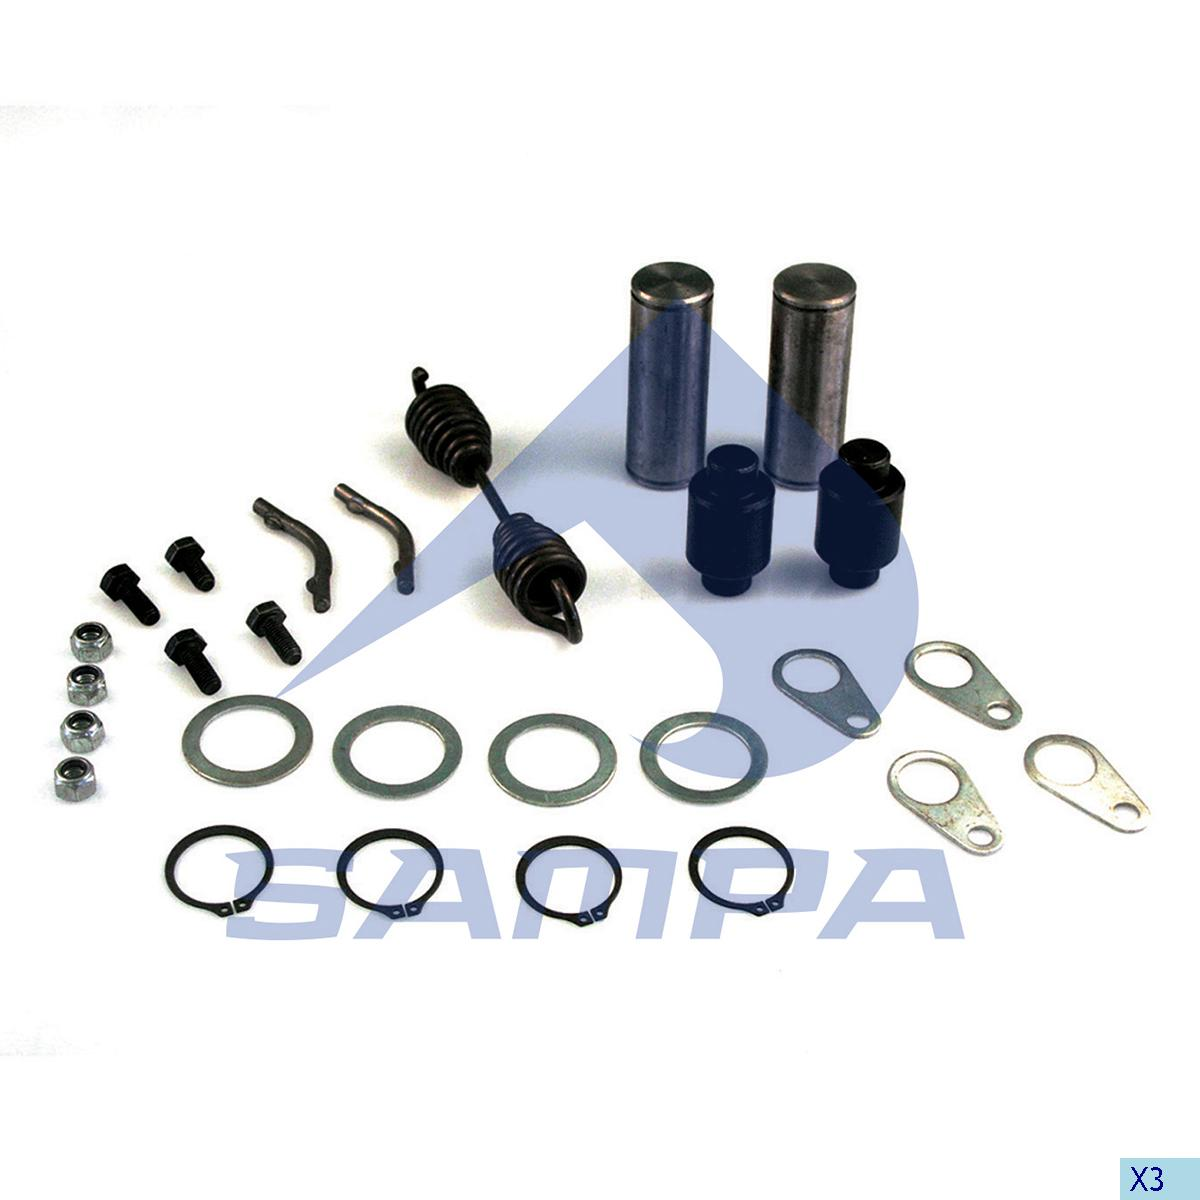 Repair Kit, Brake Shoe, Trailor, Brake